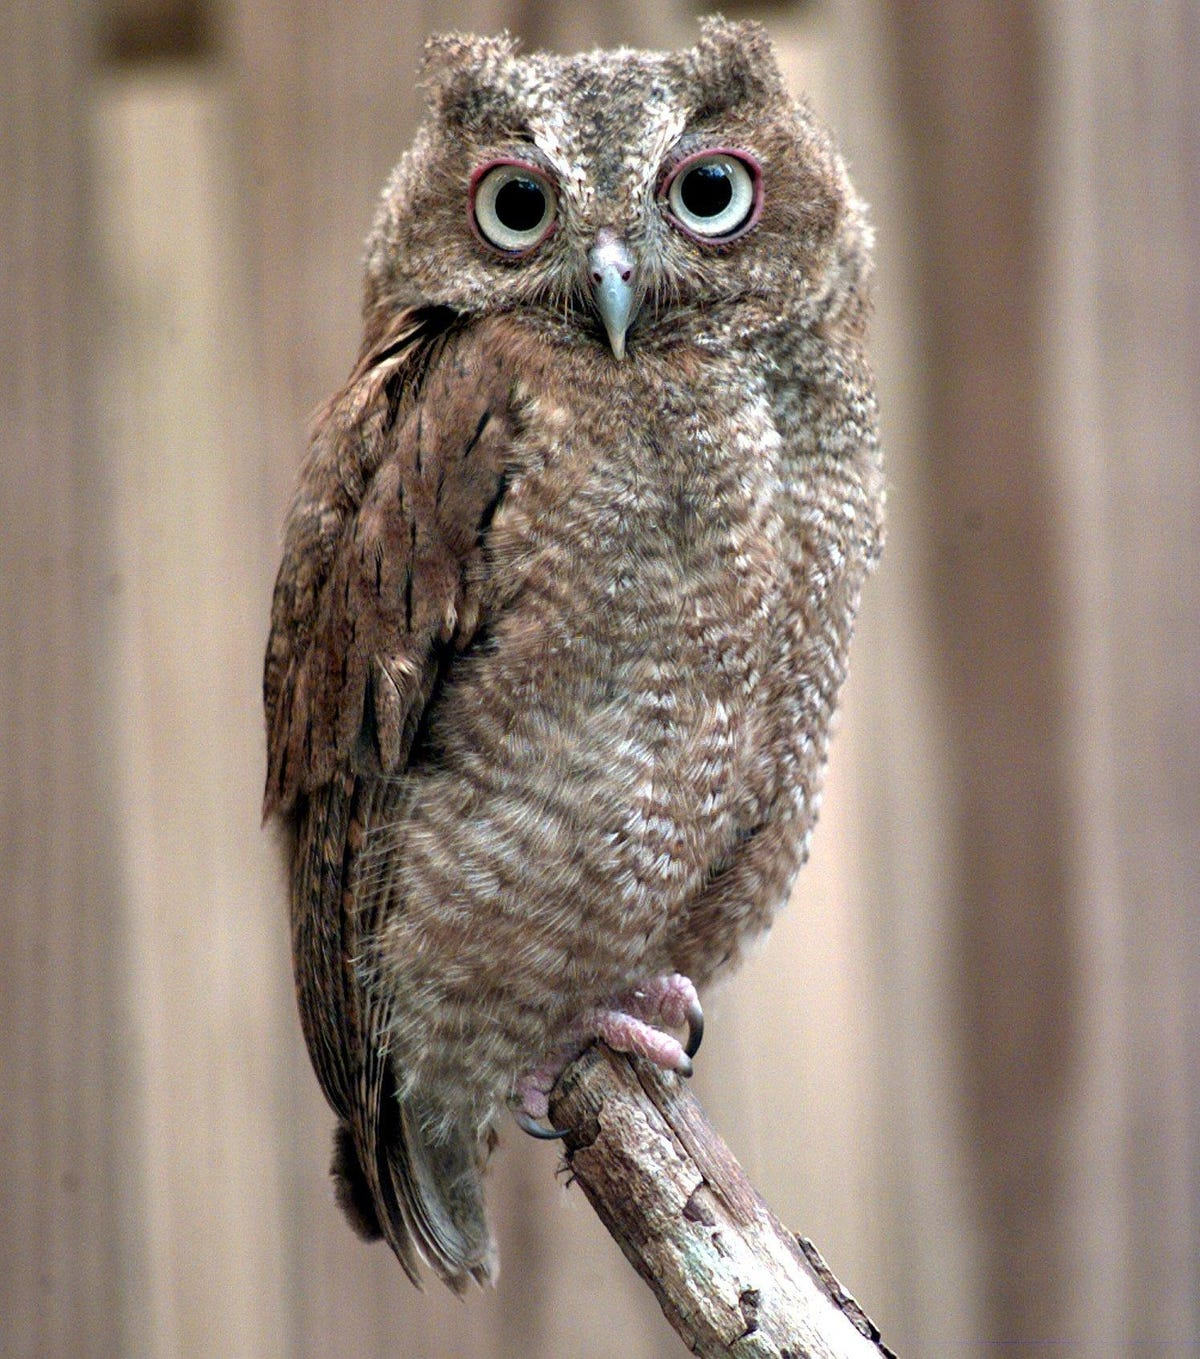 Two Rivers Woodland Dunes: Screech owls have many impacts on